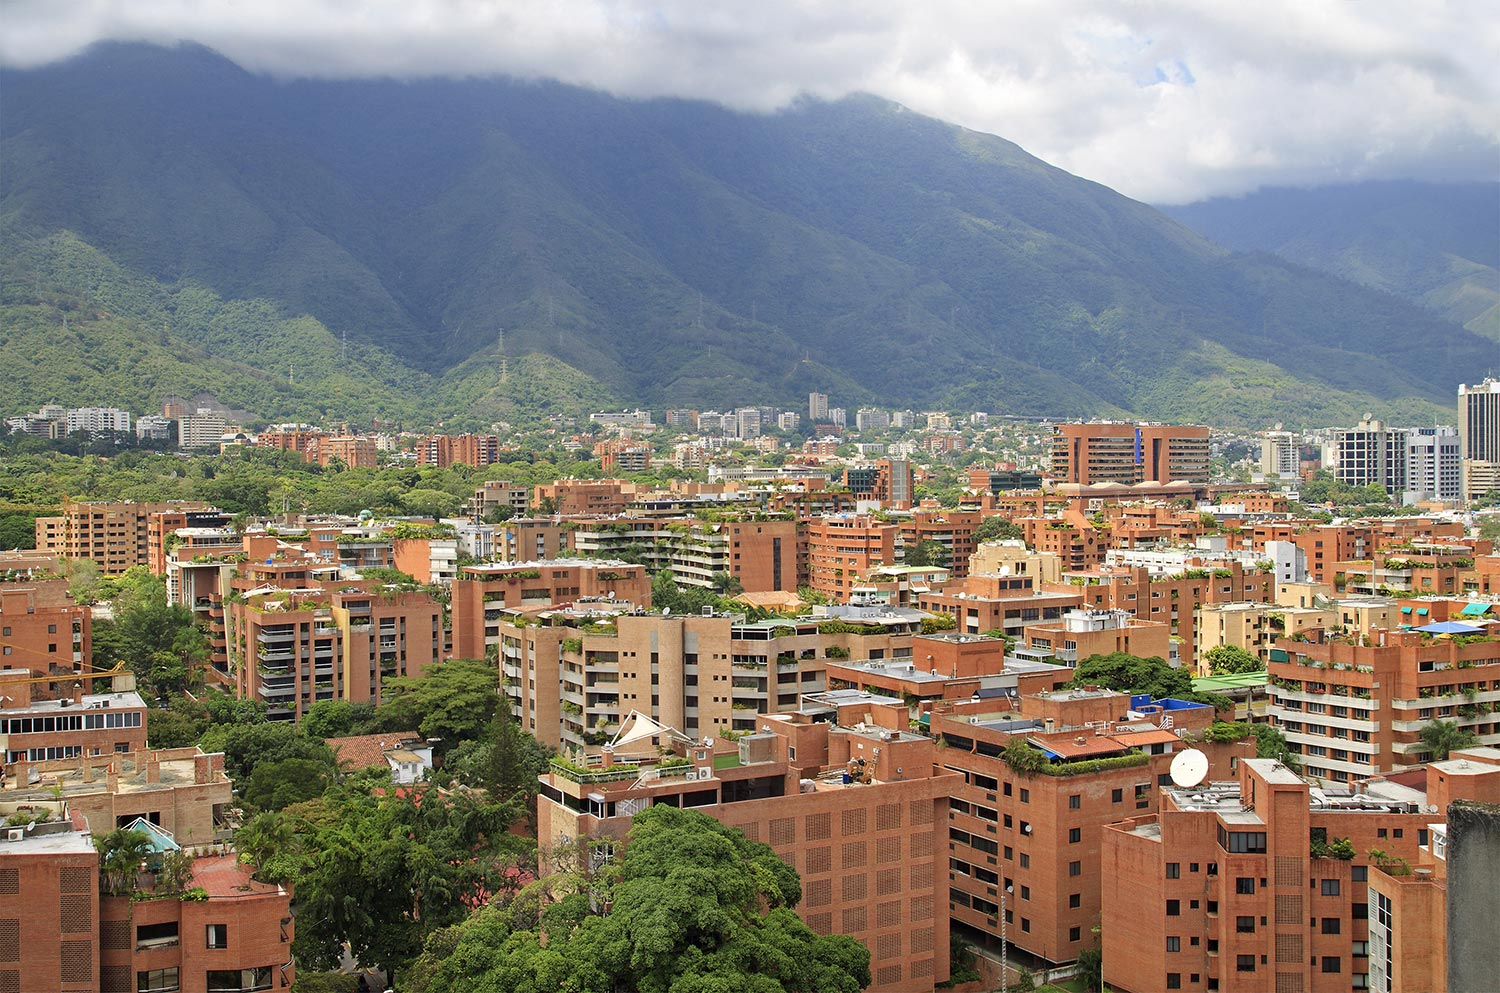 Aerial view of multi-level buildings in Caracas with mountains in the background